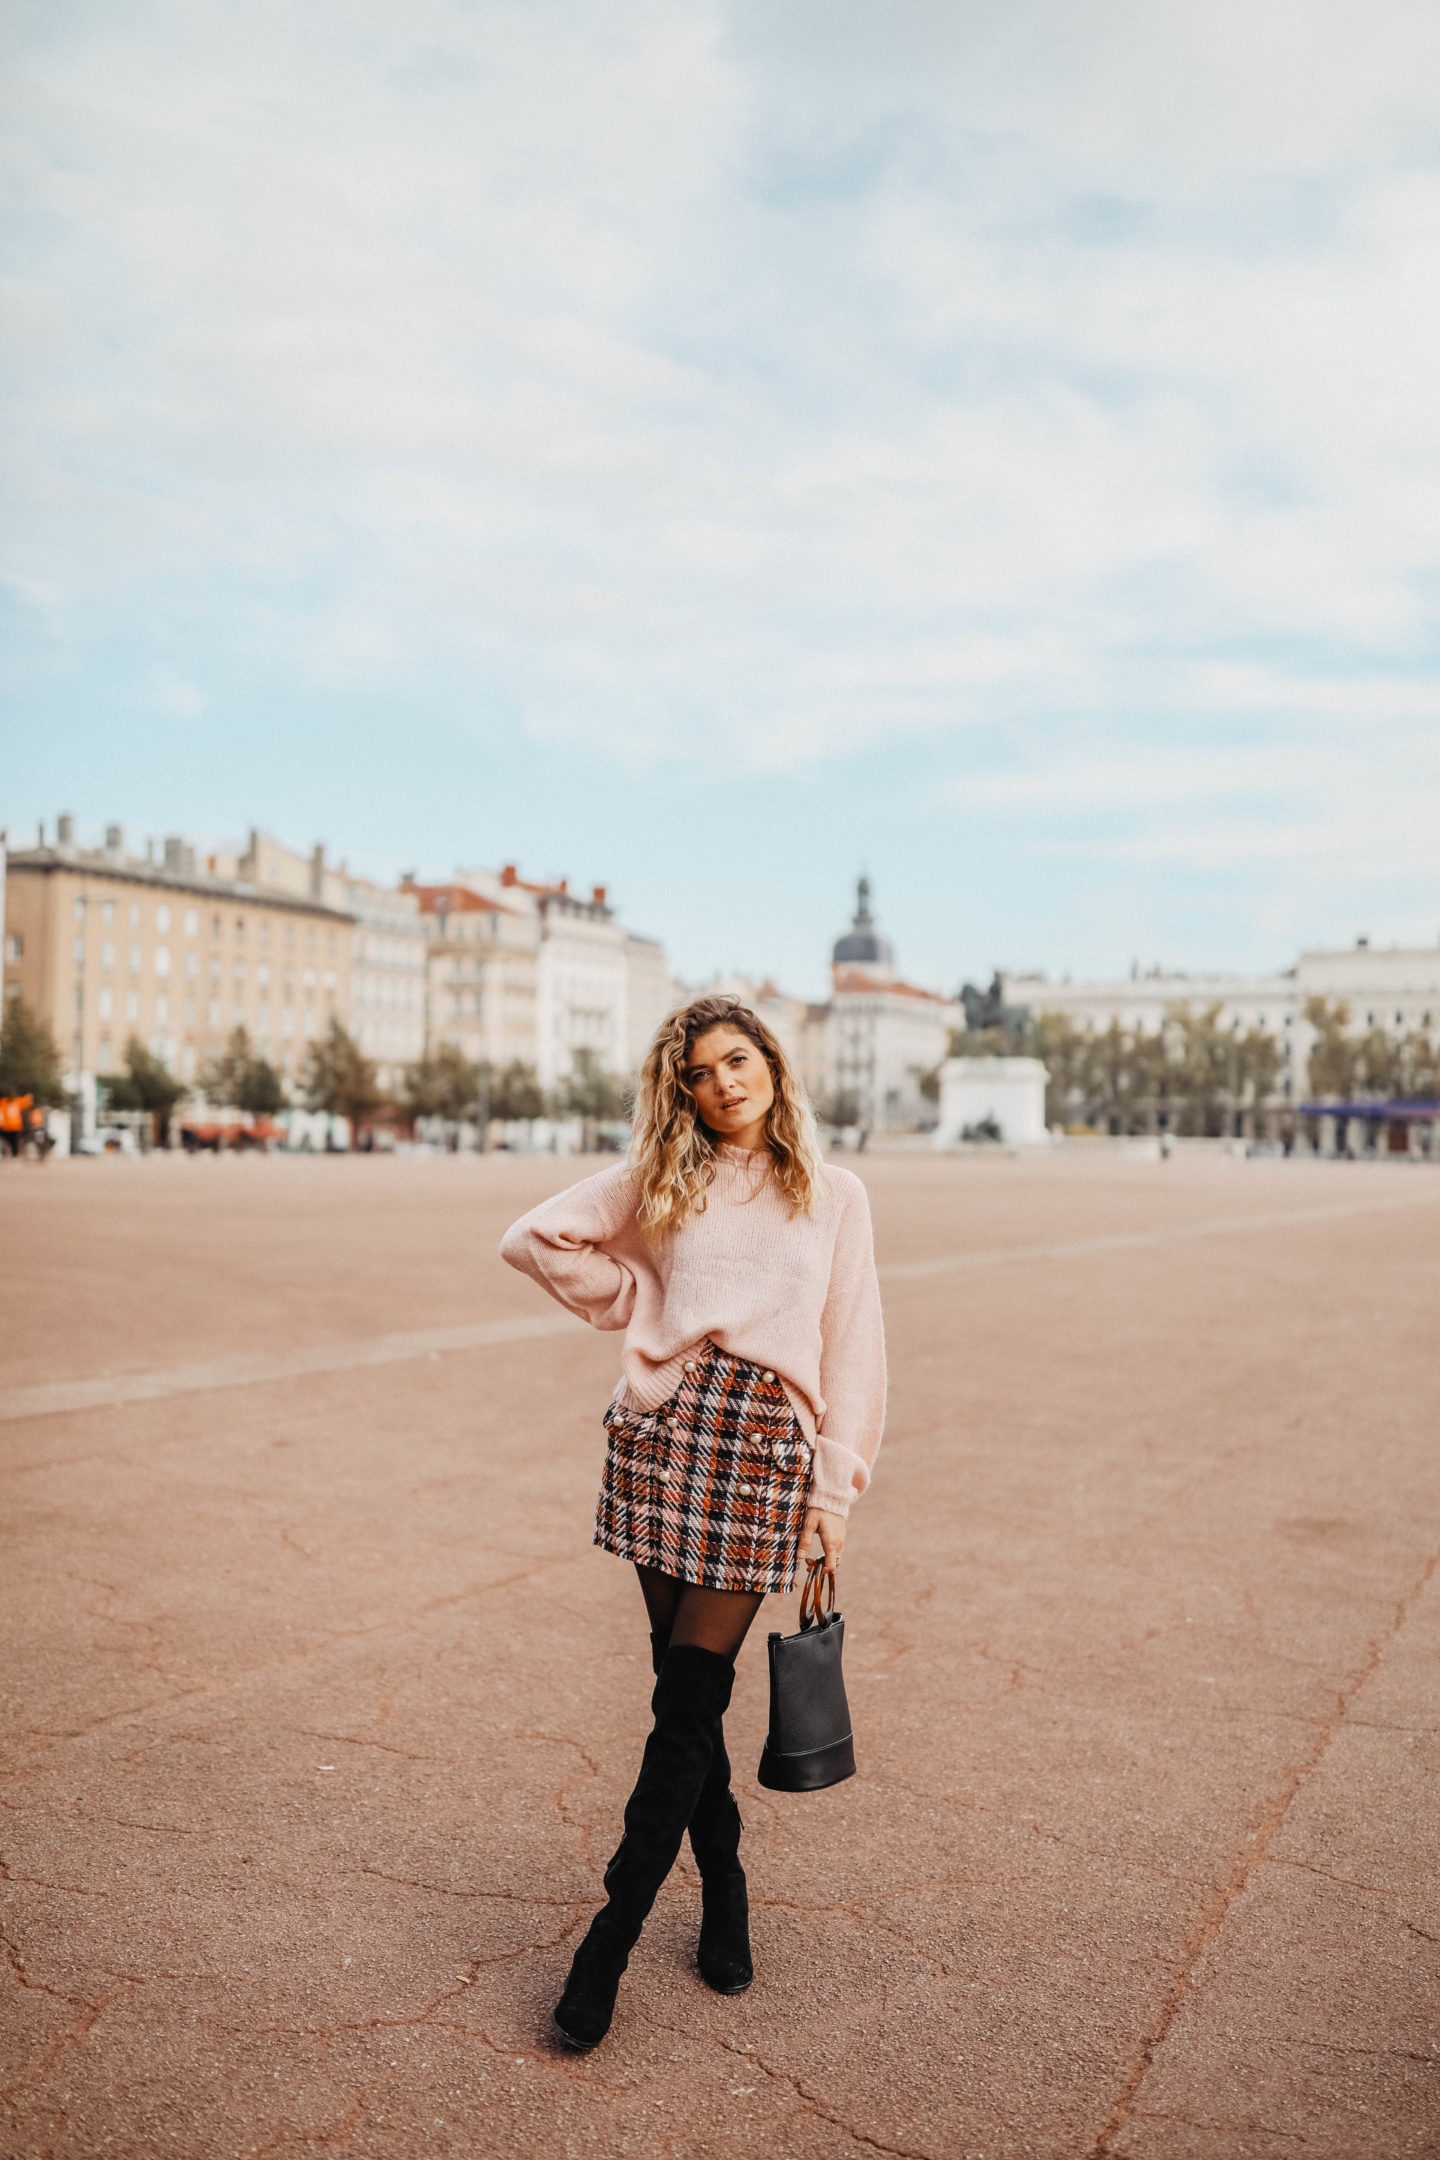 Digital influencer marie and mood mode and lifestyle